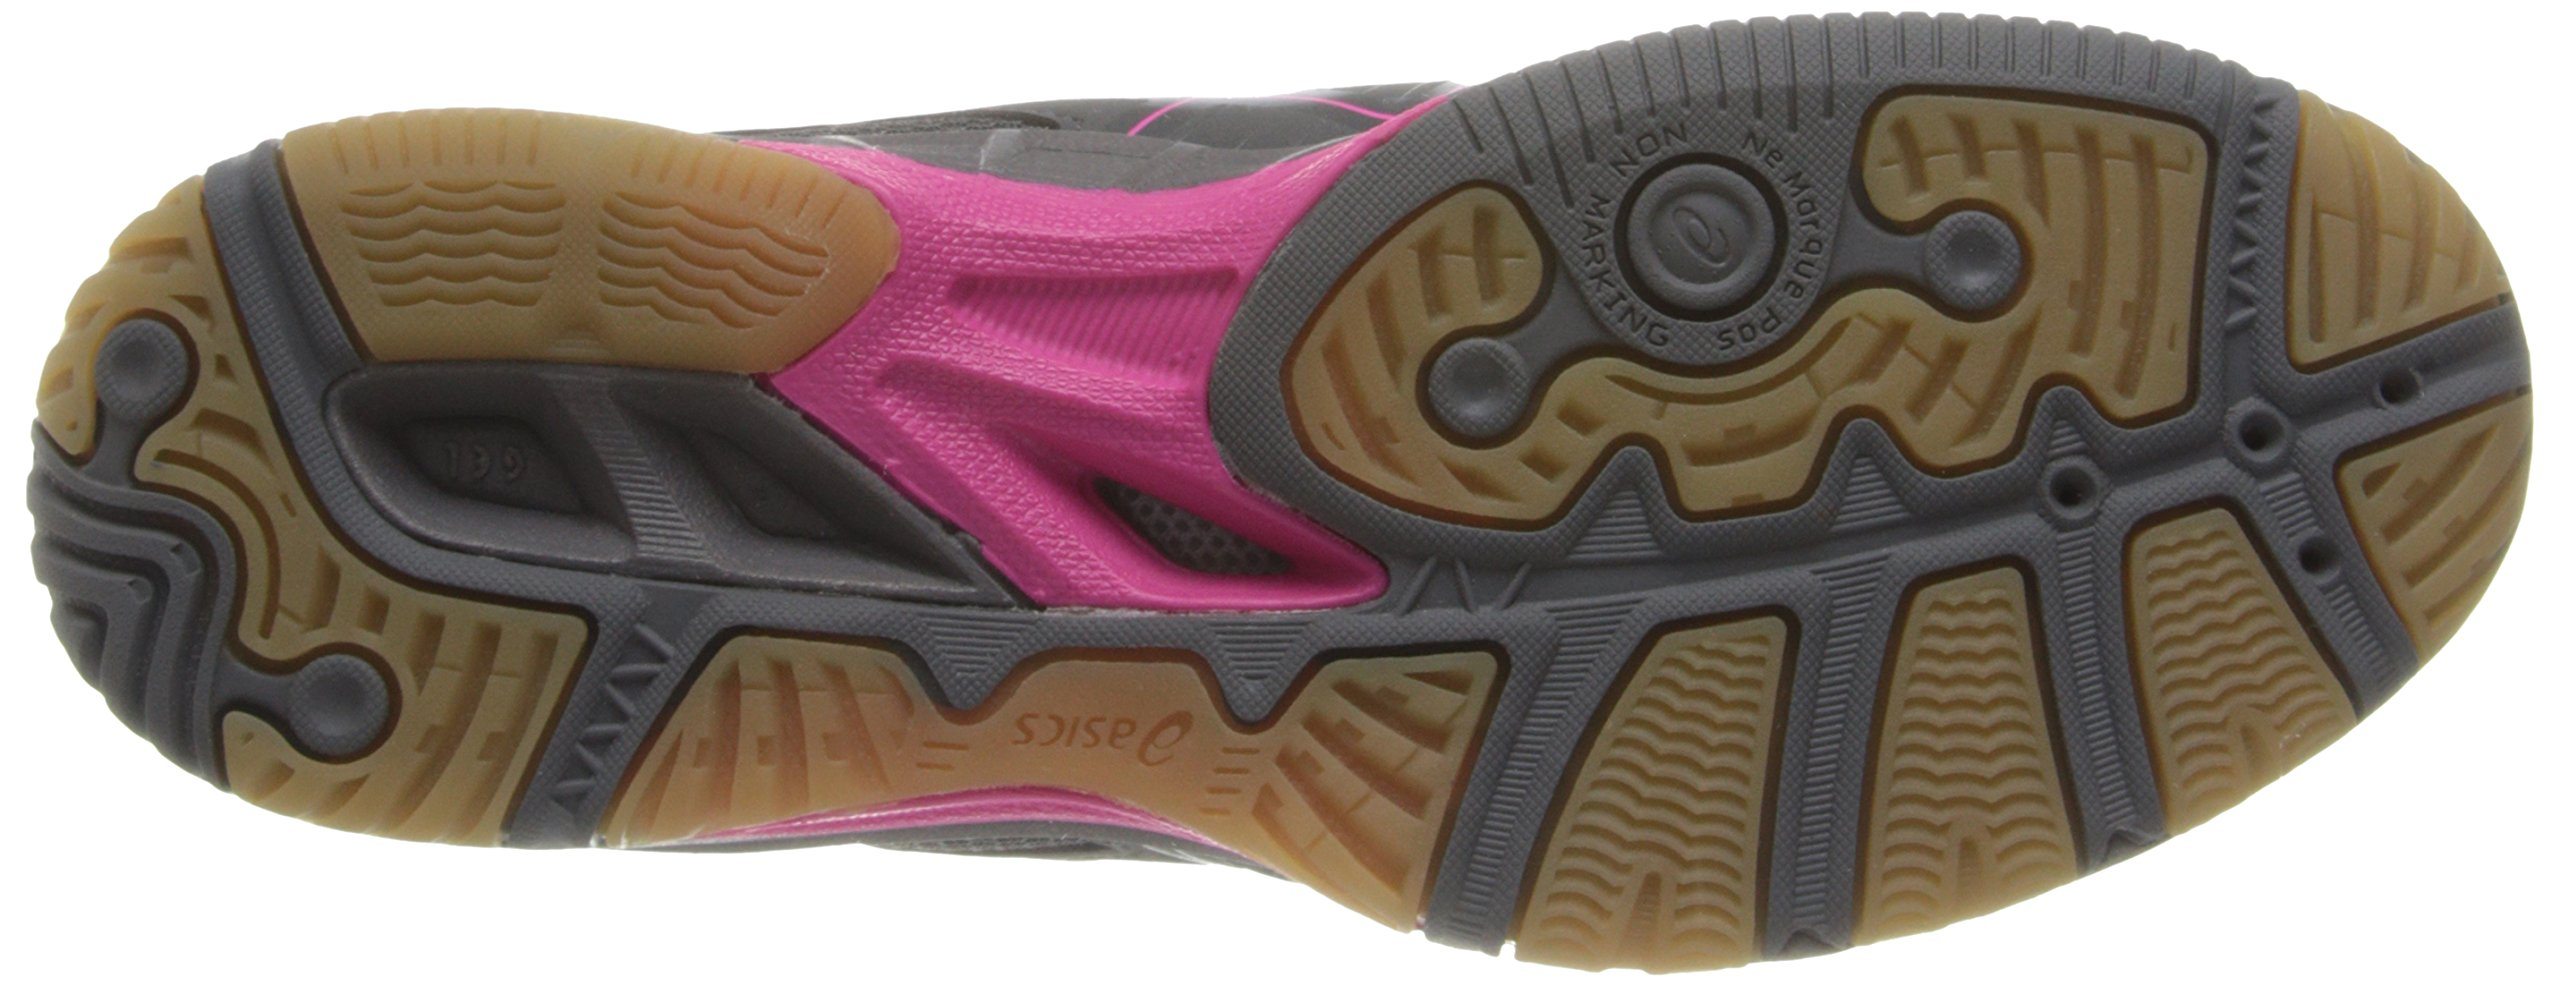 ASICS Women's Gel 1150V Volley Ball Shoe,Smoke/Knock Out Pink/Silver,8 M US by ASICS (Image #3)